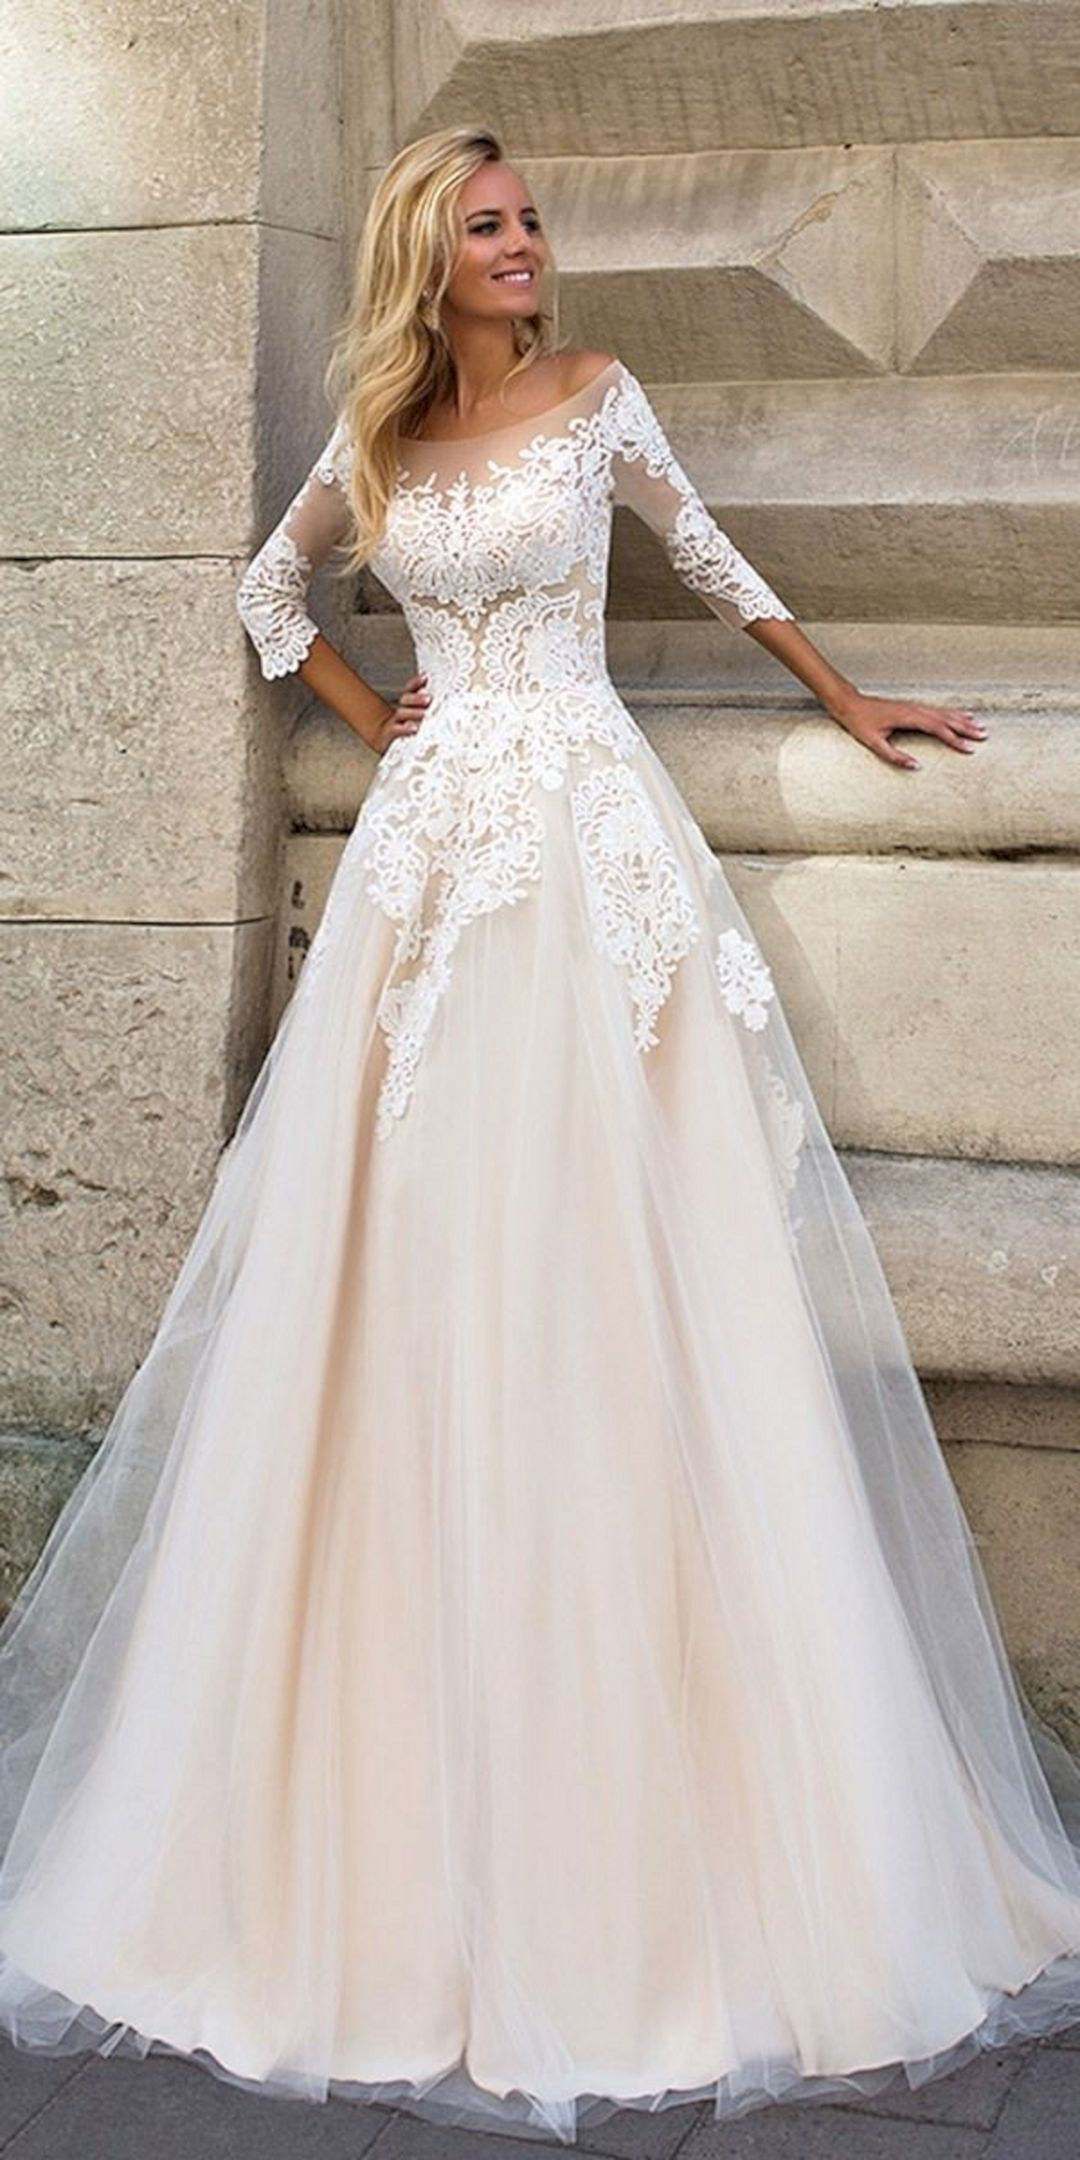 Clearance Wedding Dresses.Wedding Gown Clearance Sale Junk Mail